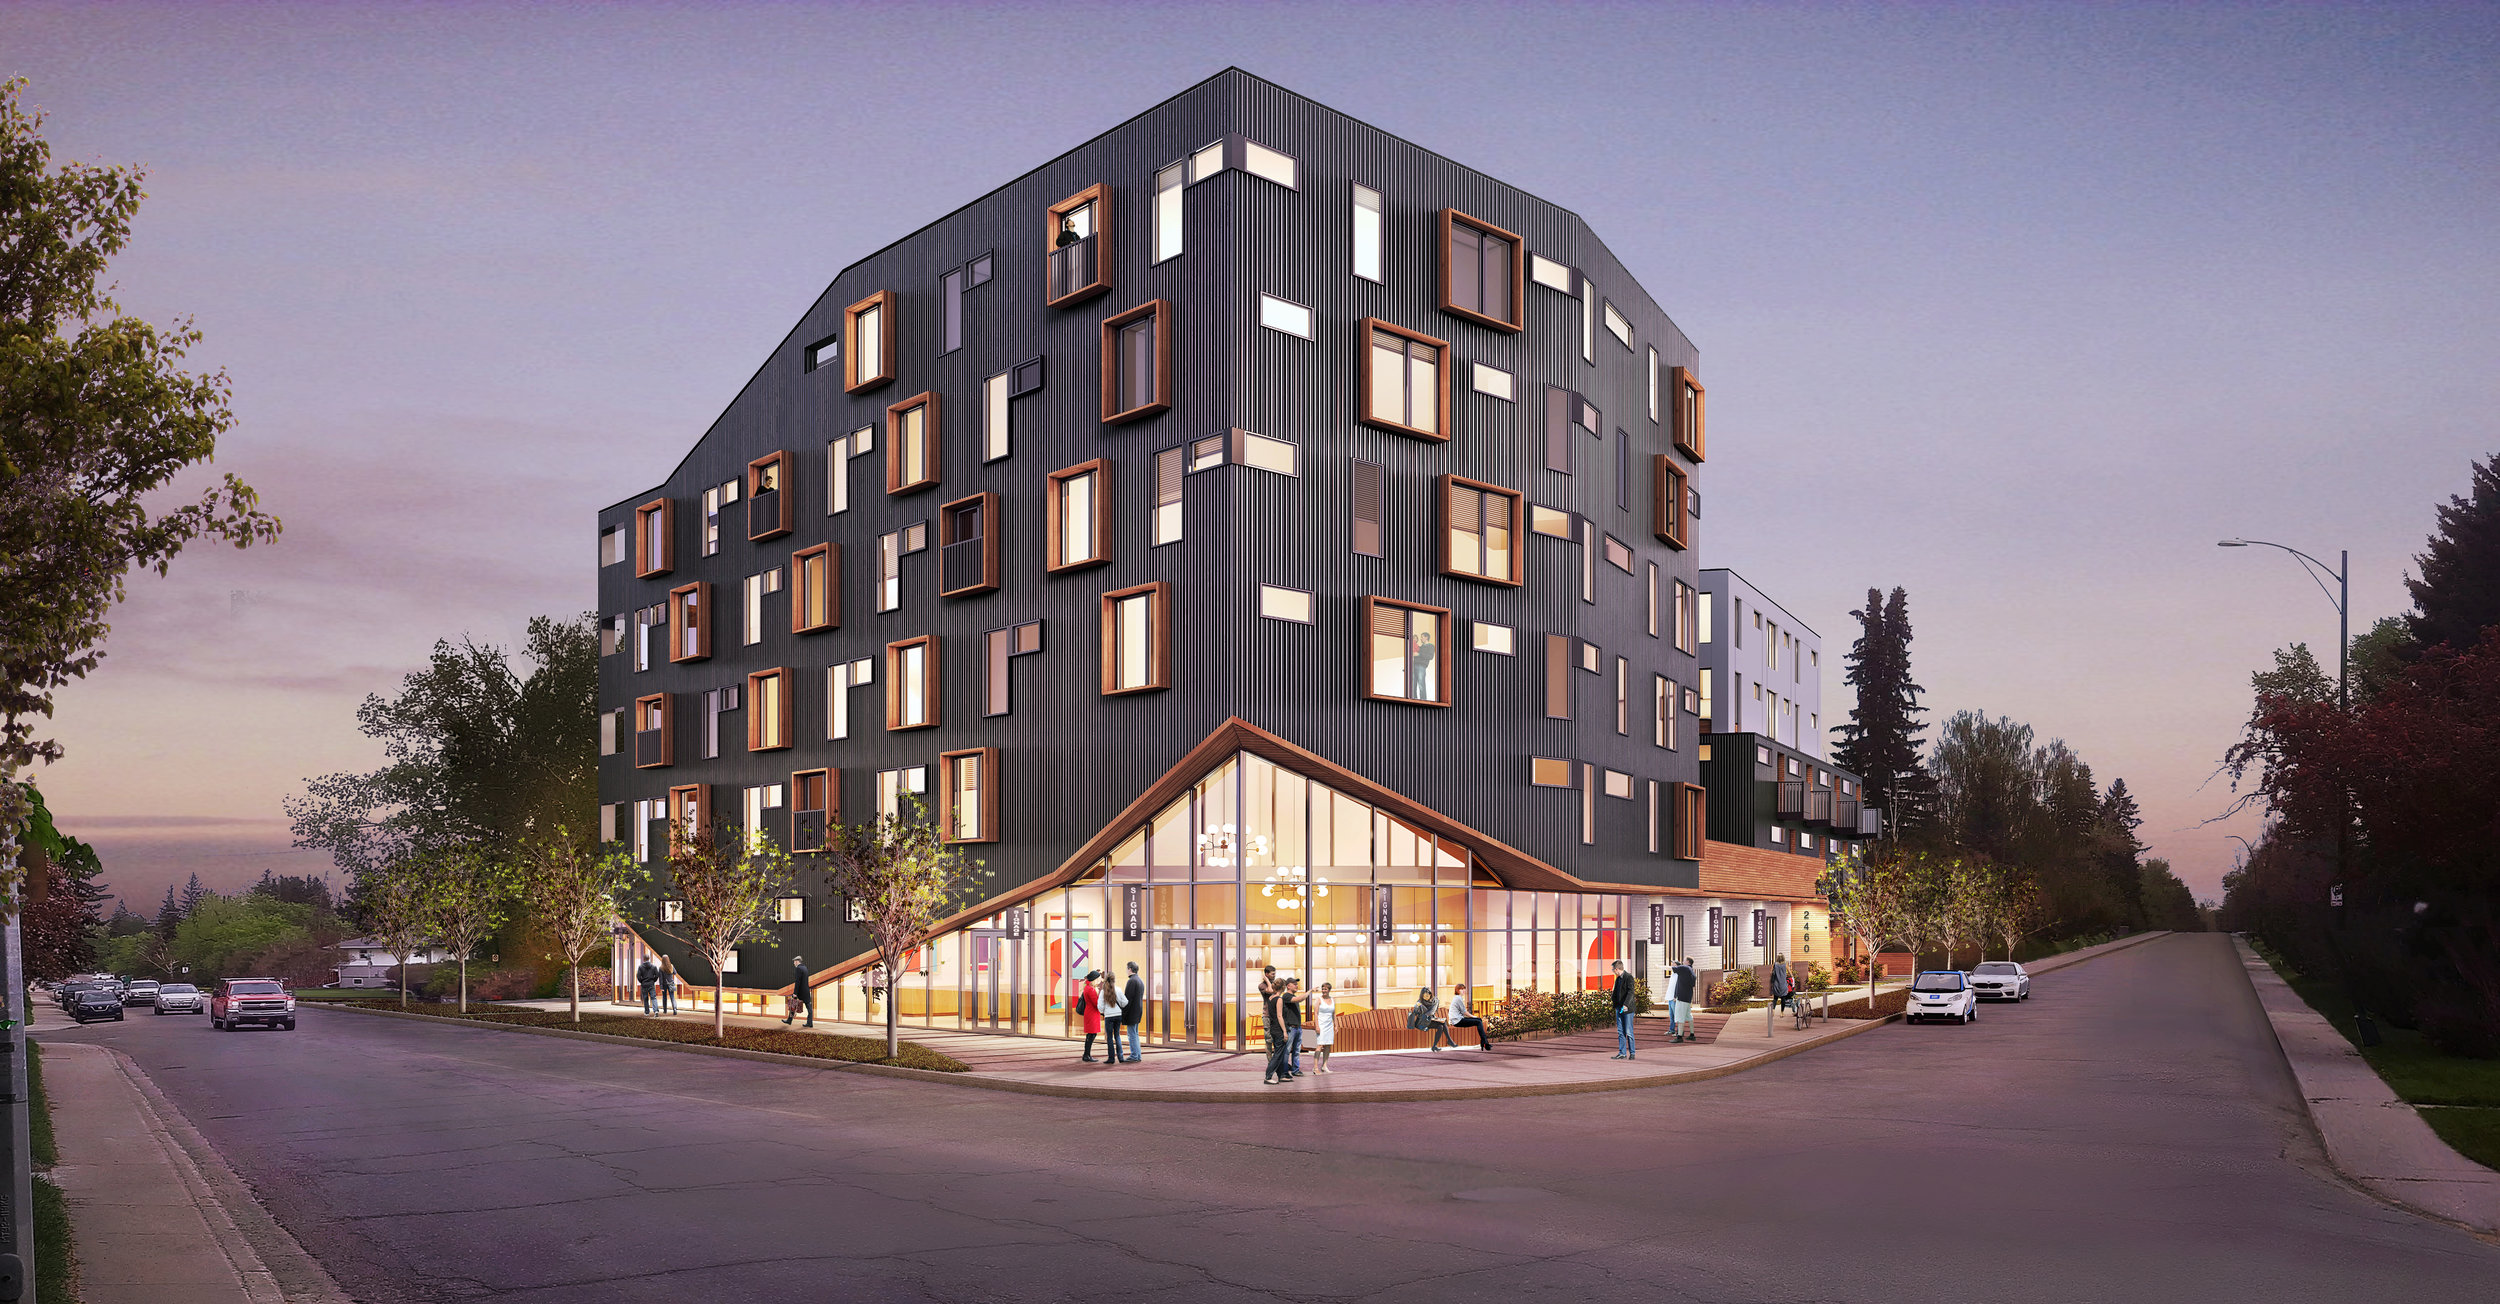 PROJECT 01 - 2460, 2464, 2468 - 23 ST NW